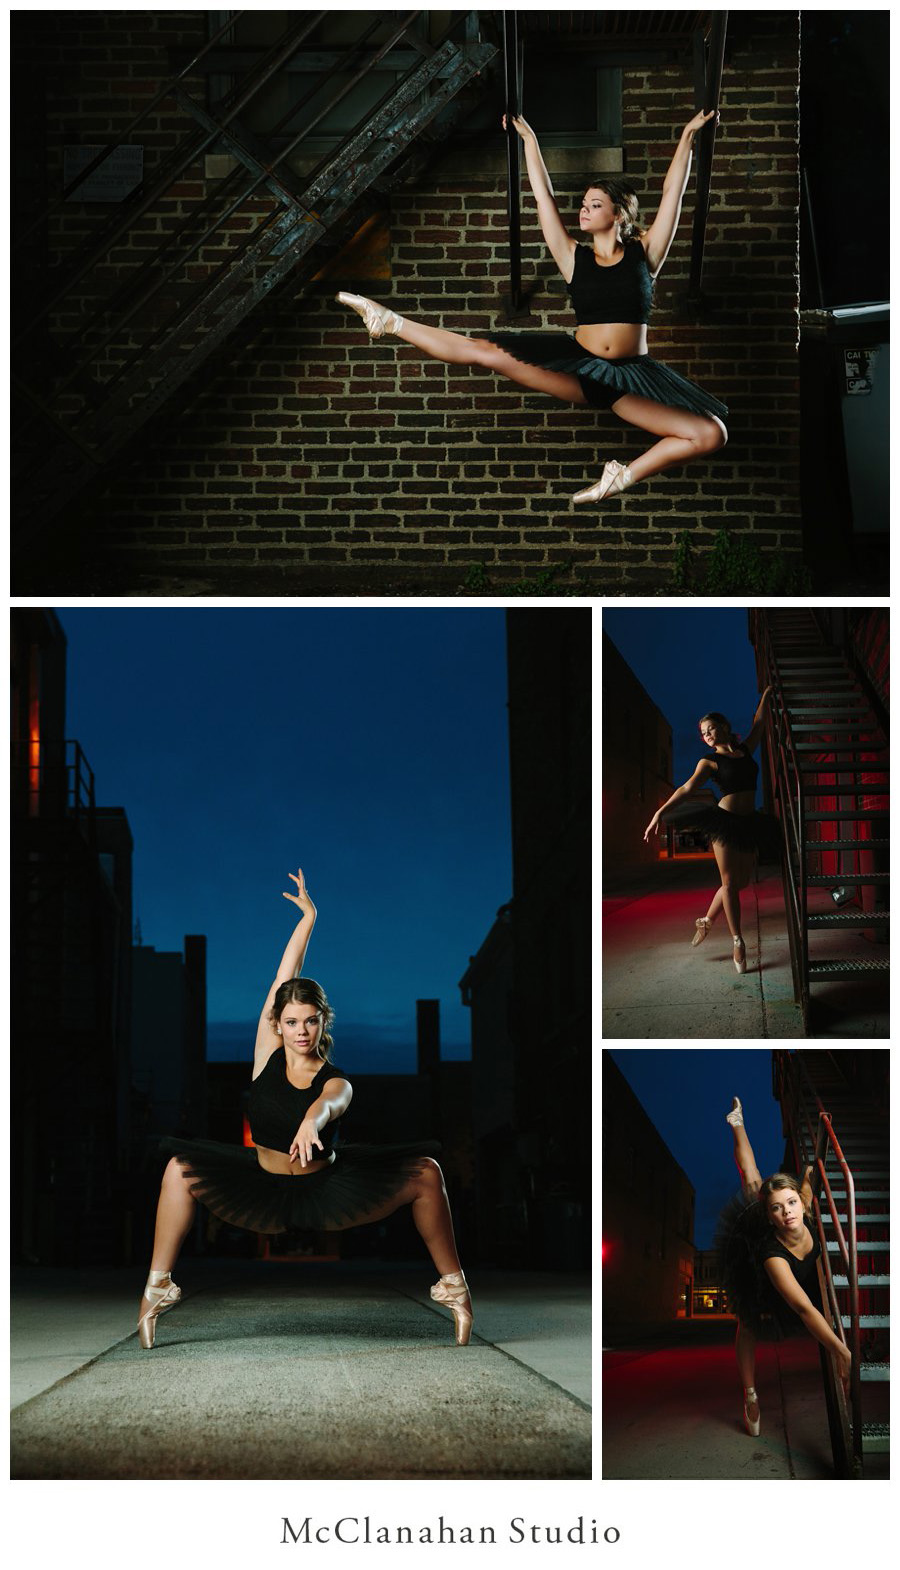 Dusk dancing, awesome senior photos of Madelene Pals from Waukee. Strobes and long exposures create edgy and surreal imagery doing artistic justice to Maddie's poise and grace. Ames, Iowa ballerina in a black tutu.